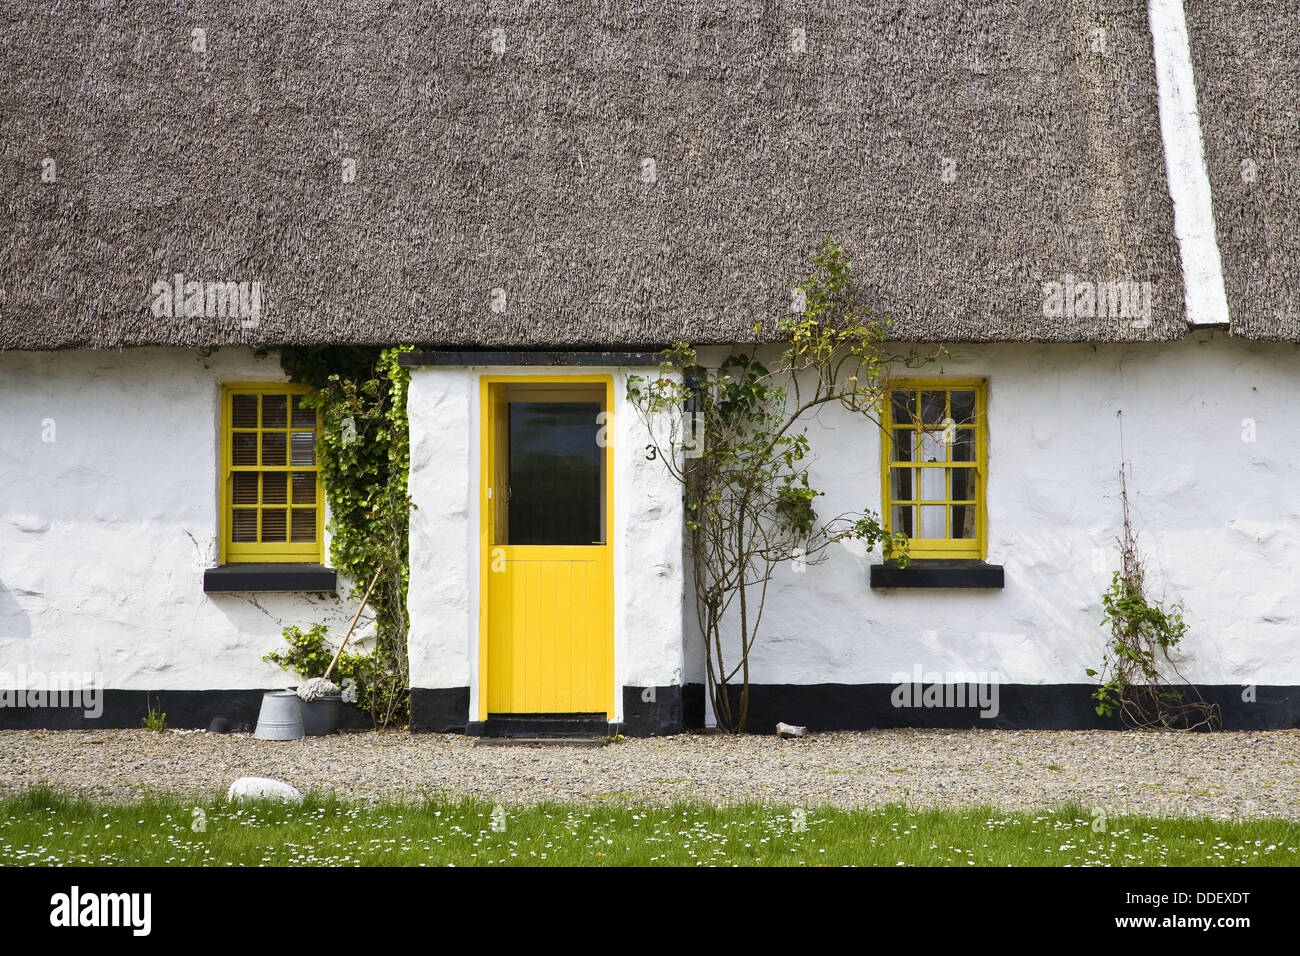 Picturesque thatched cottage with yellow door and windows in Ballyvaughan, Ireland, Europe - Stock Image